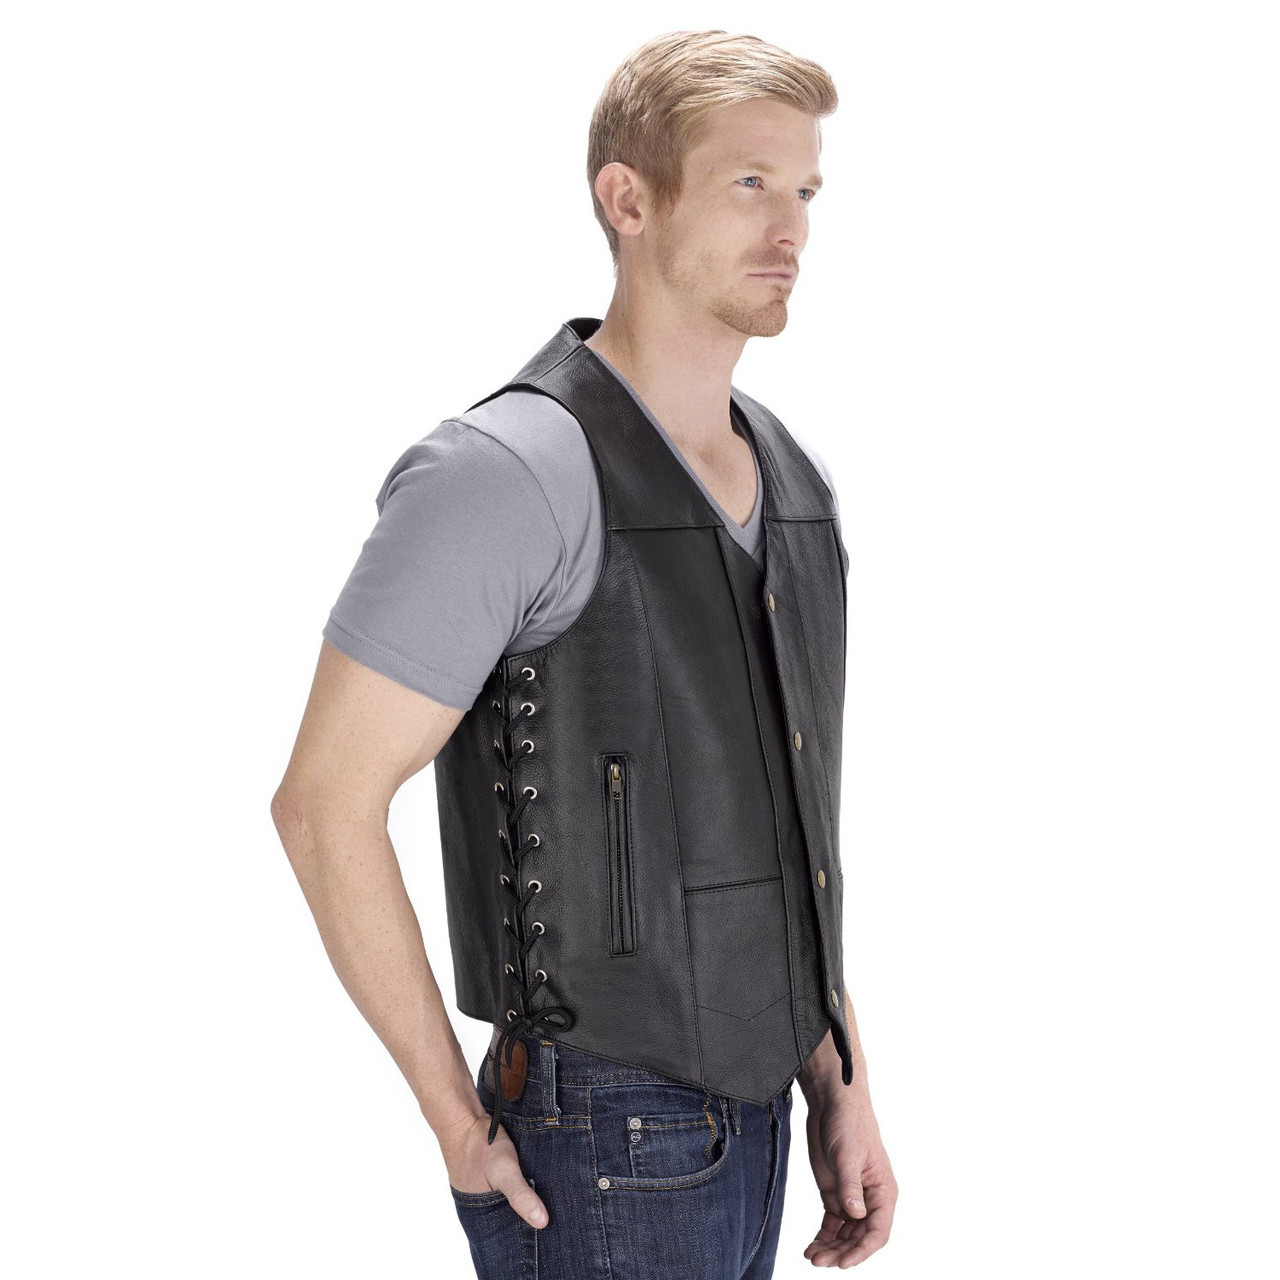 VikingCycle Thorfinn 10 pocket Motorcycle Vest for Men Side View